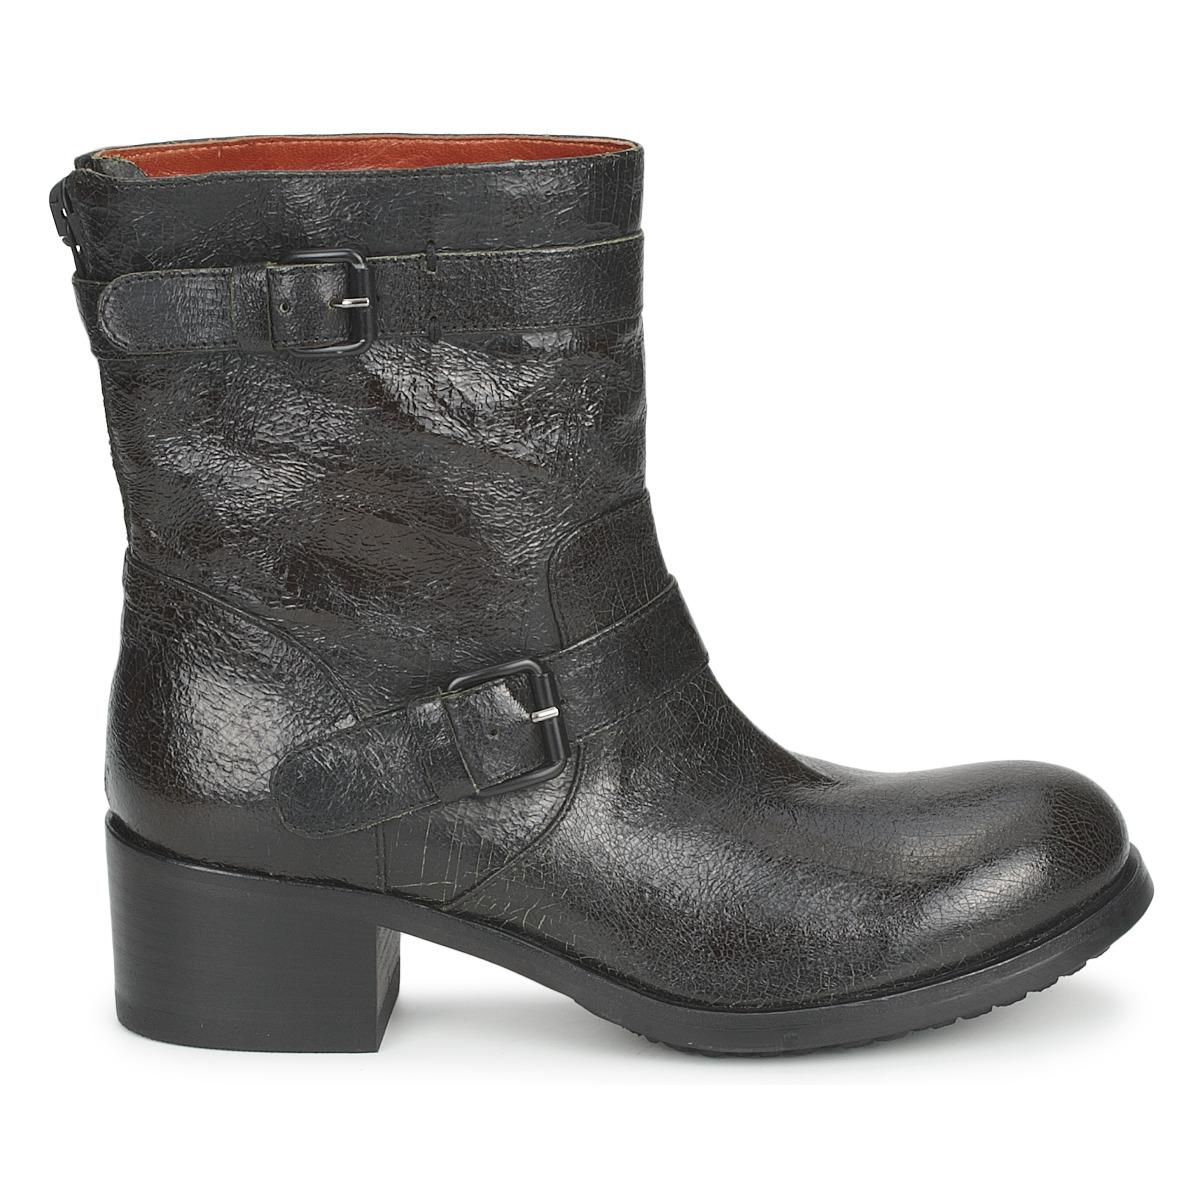 Buy Cheap In China Fru.it PINI women's Mid Boots in Cheap Limited Edition Great Deals Cheap Price Affordable For Sale Visit Cheap Price g6PvSxzUo